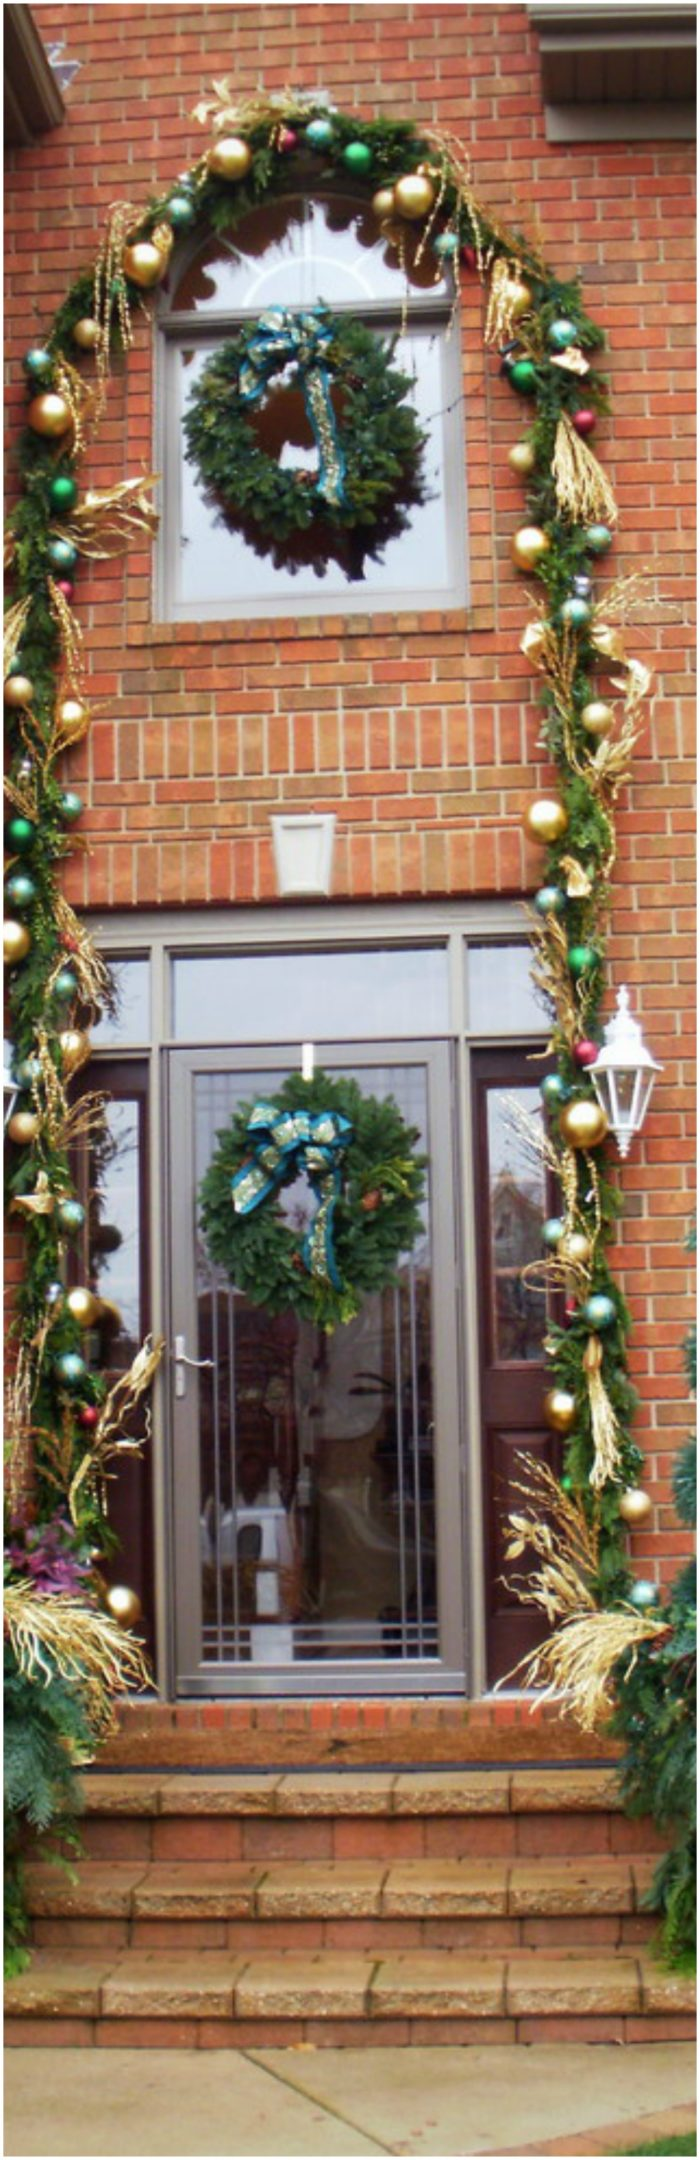 Outdoor Christmas Decorations (66)